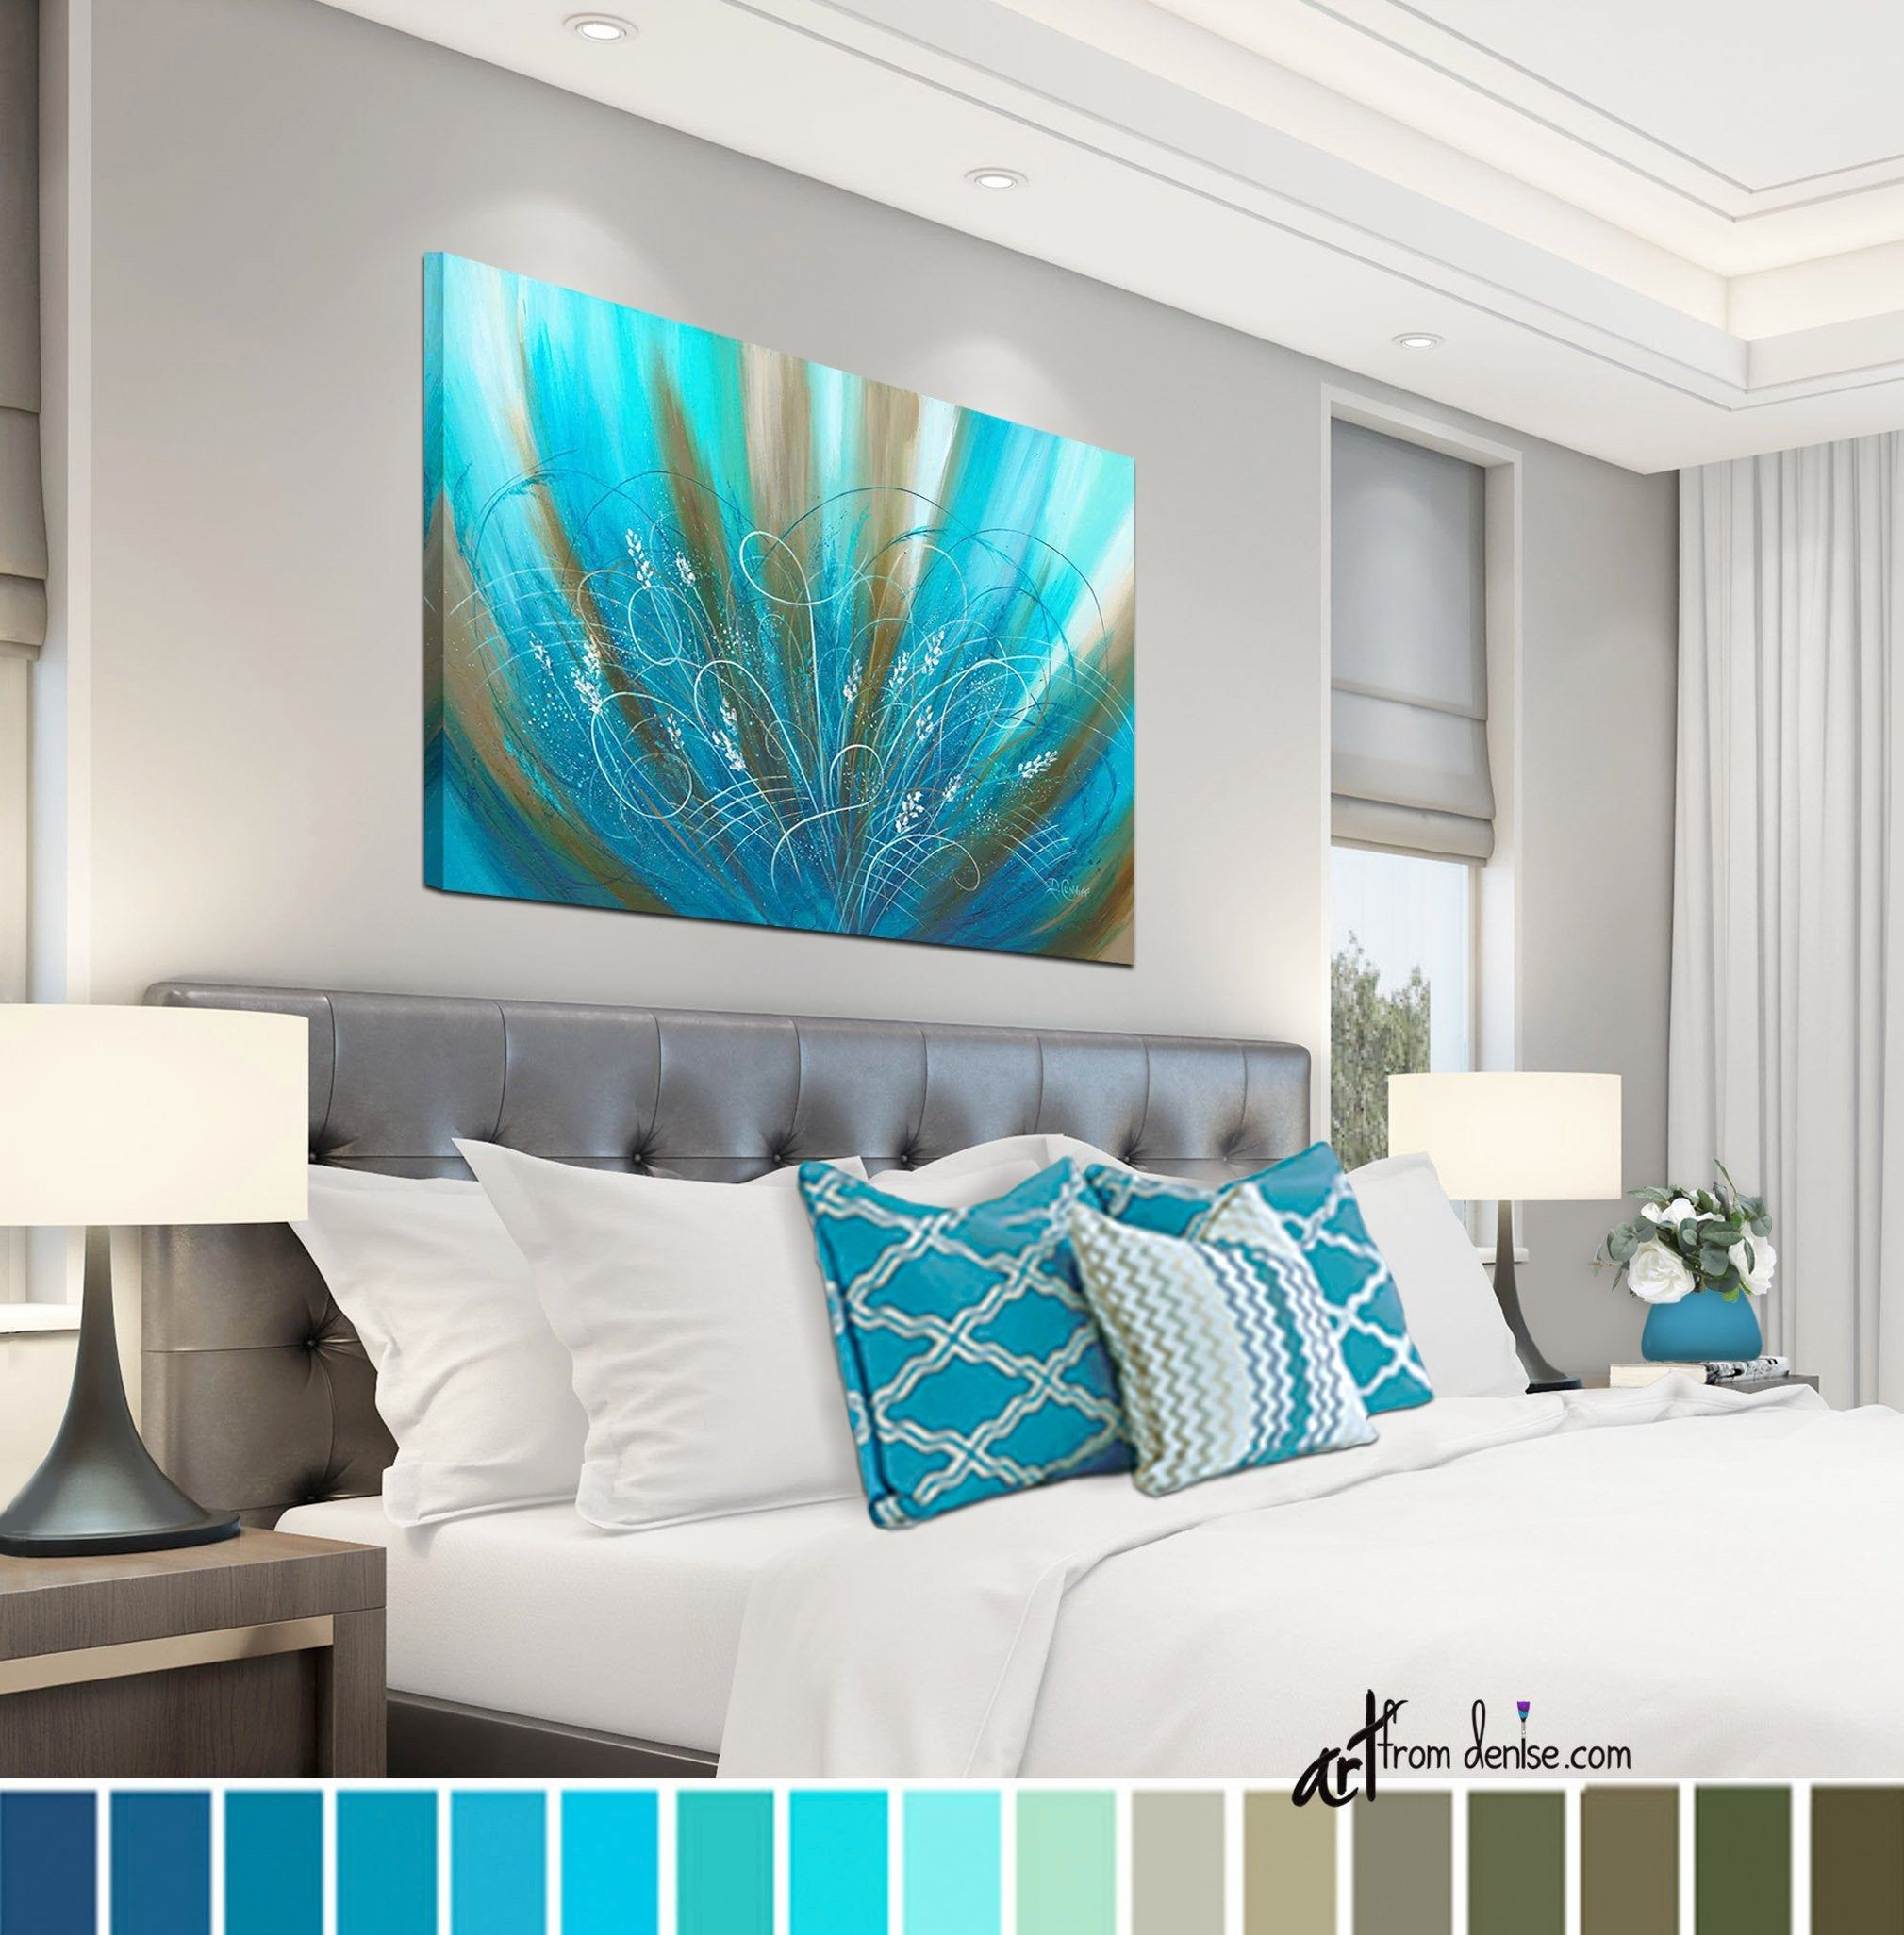 Bedroom picture, Flower art work / Brown aqua blue turquoise